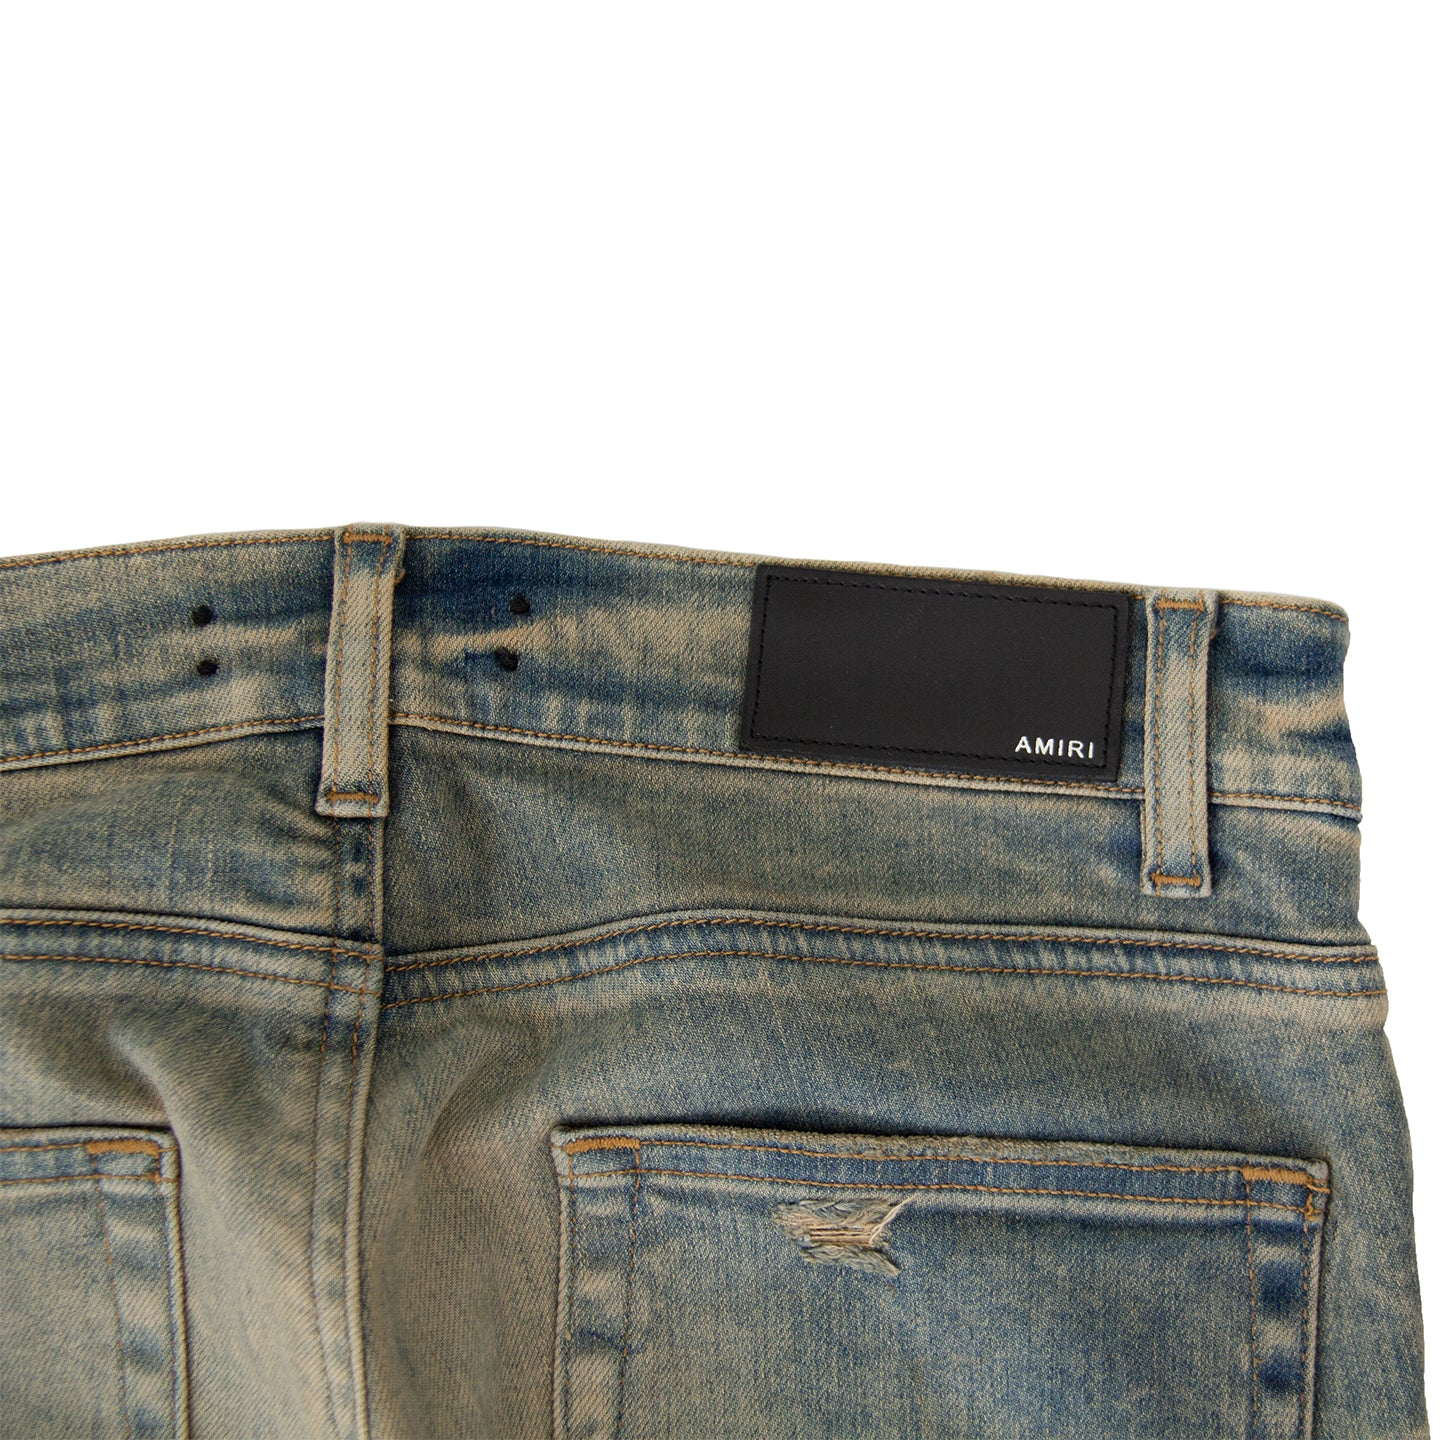 AMIRI DISTRESSED SKINNY DENIM